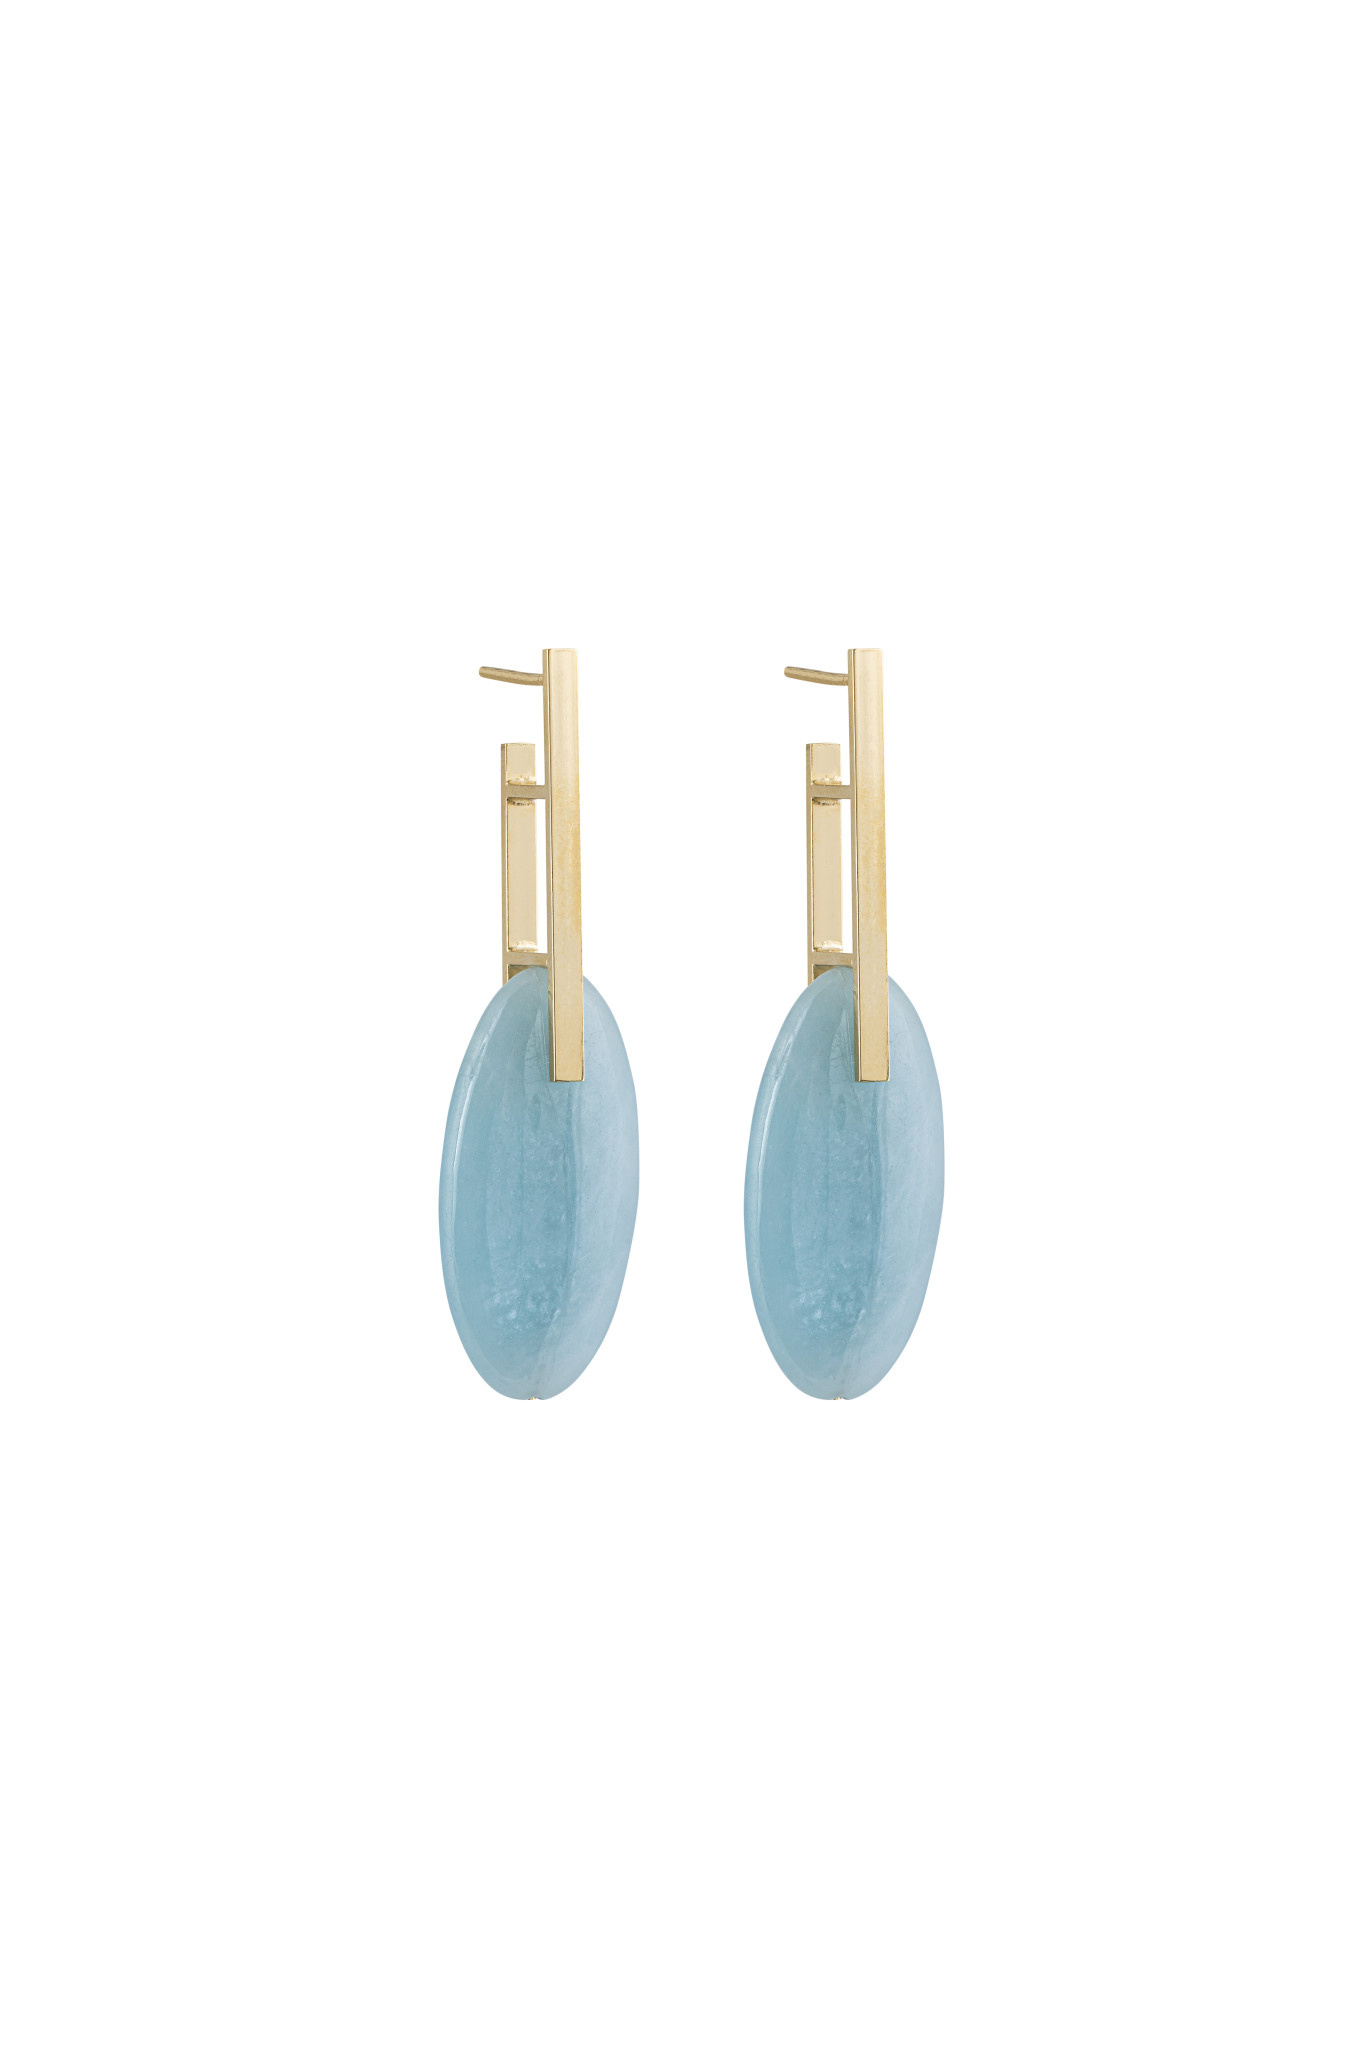 Studio Collect - Minimal Aquamarine Statement Earrings